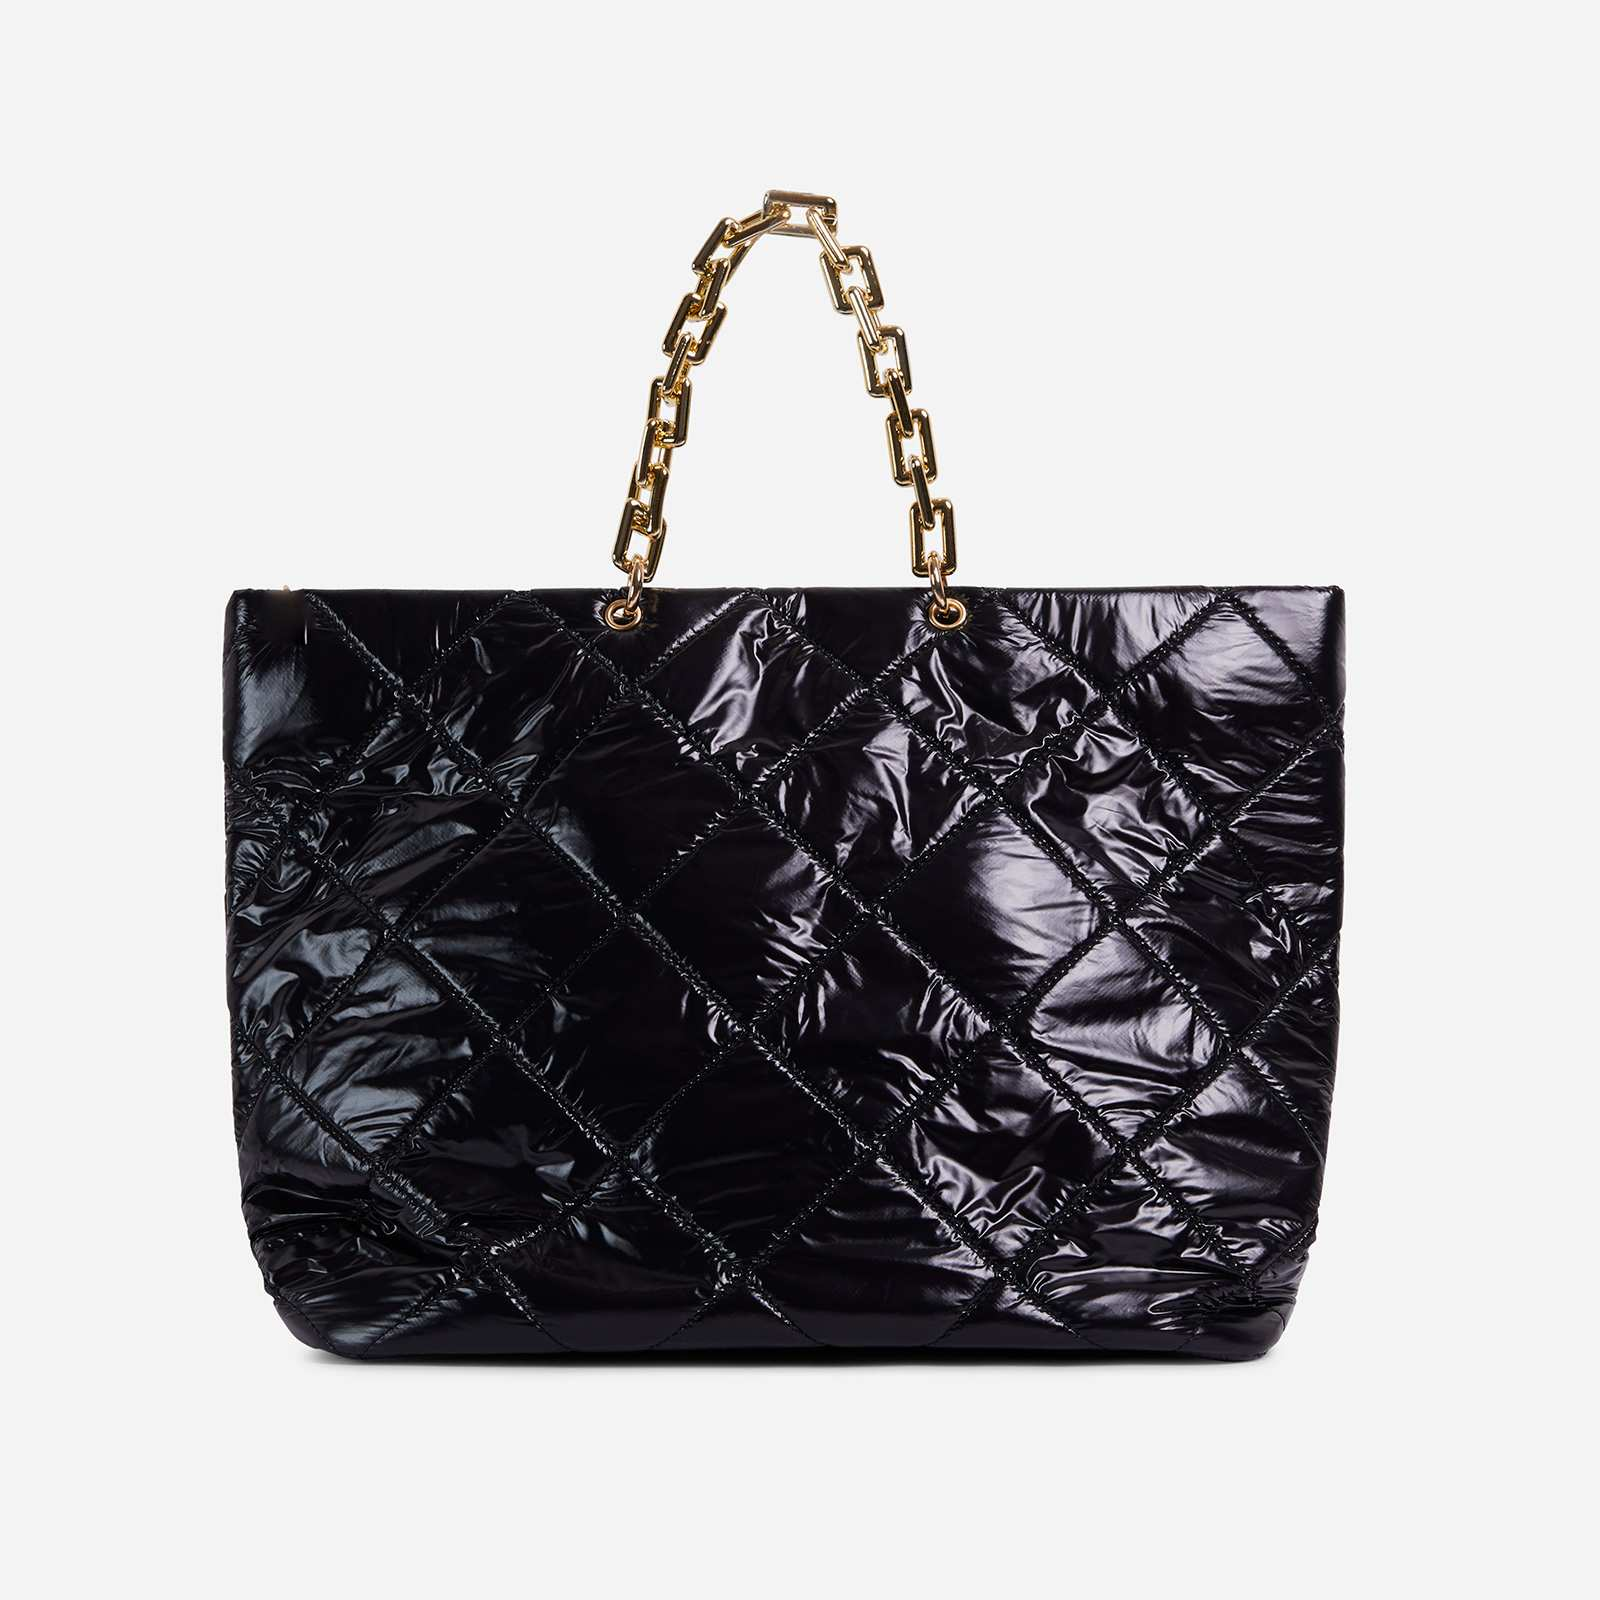 Royalty Chain Detail Large Quilted Shoulder Bag In Black Nylon